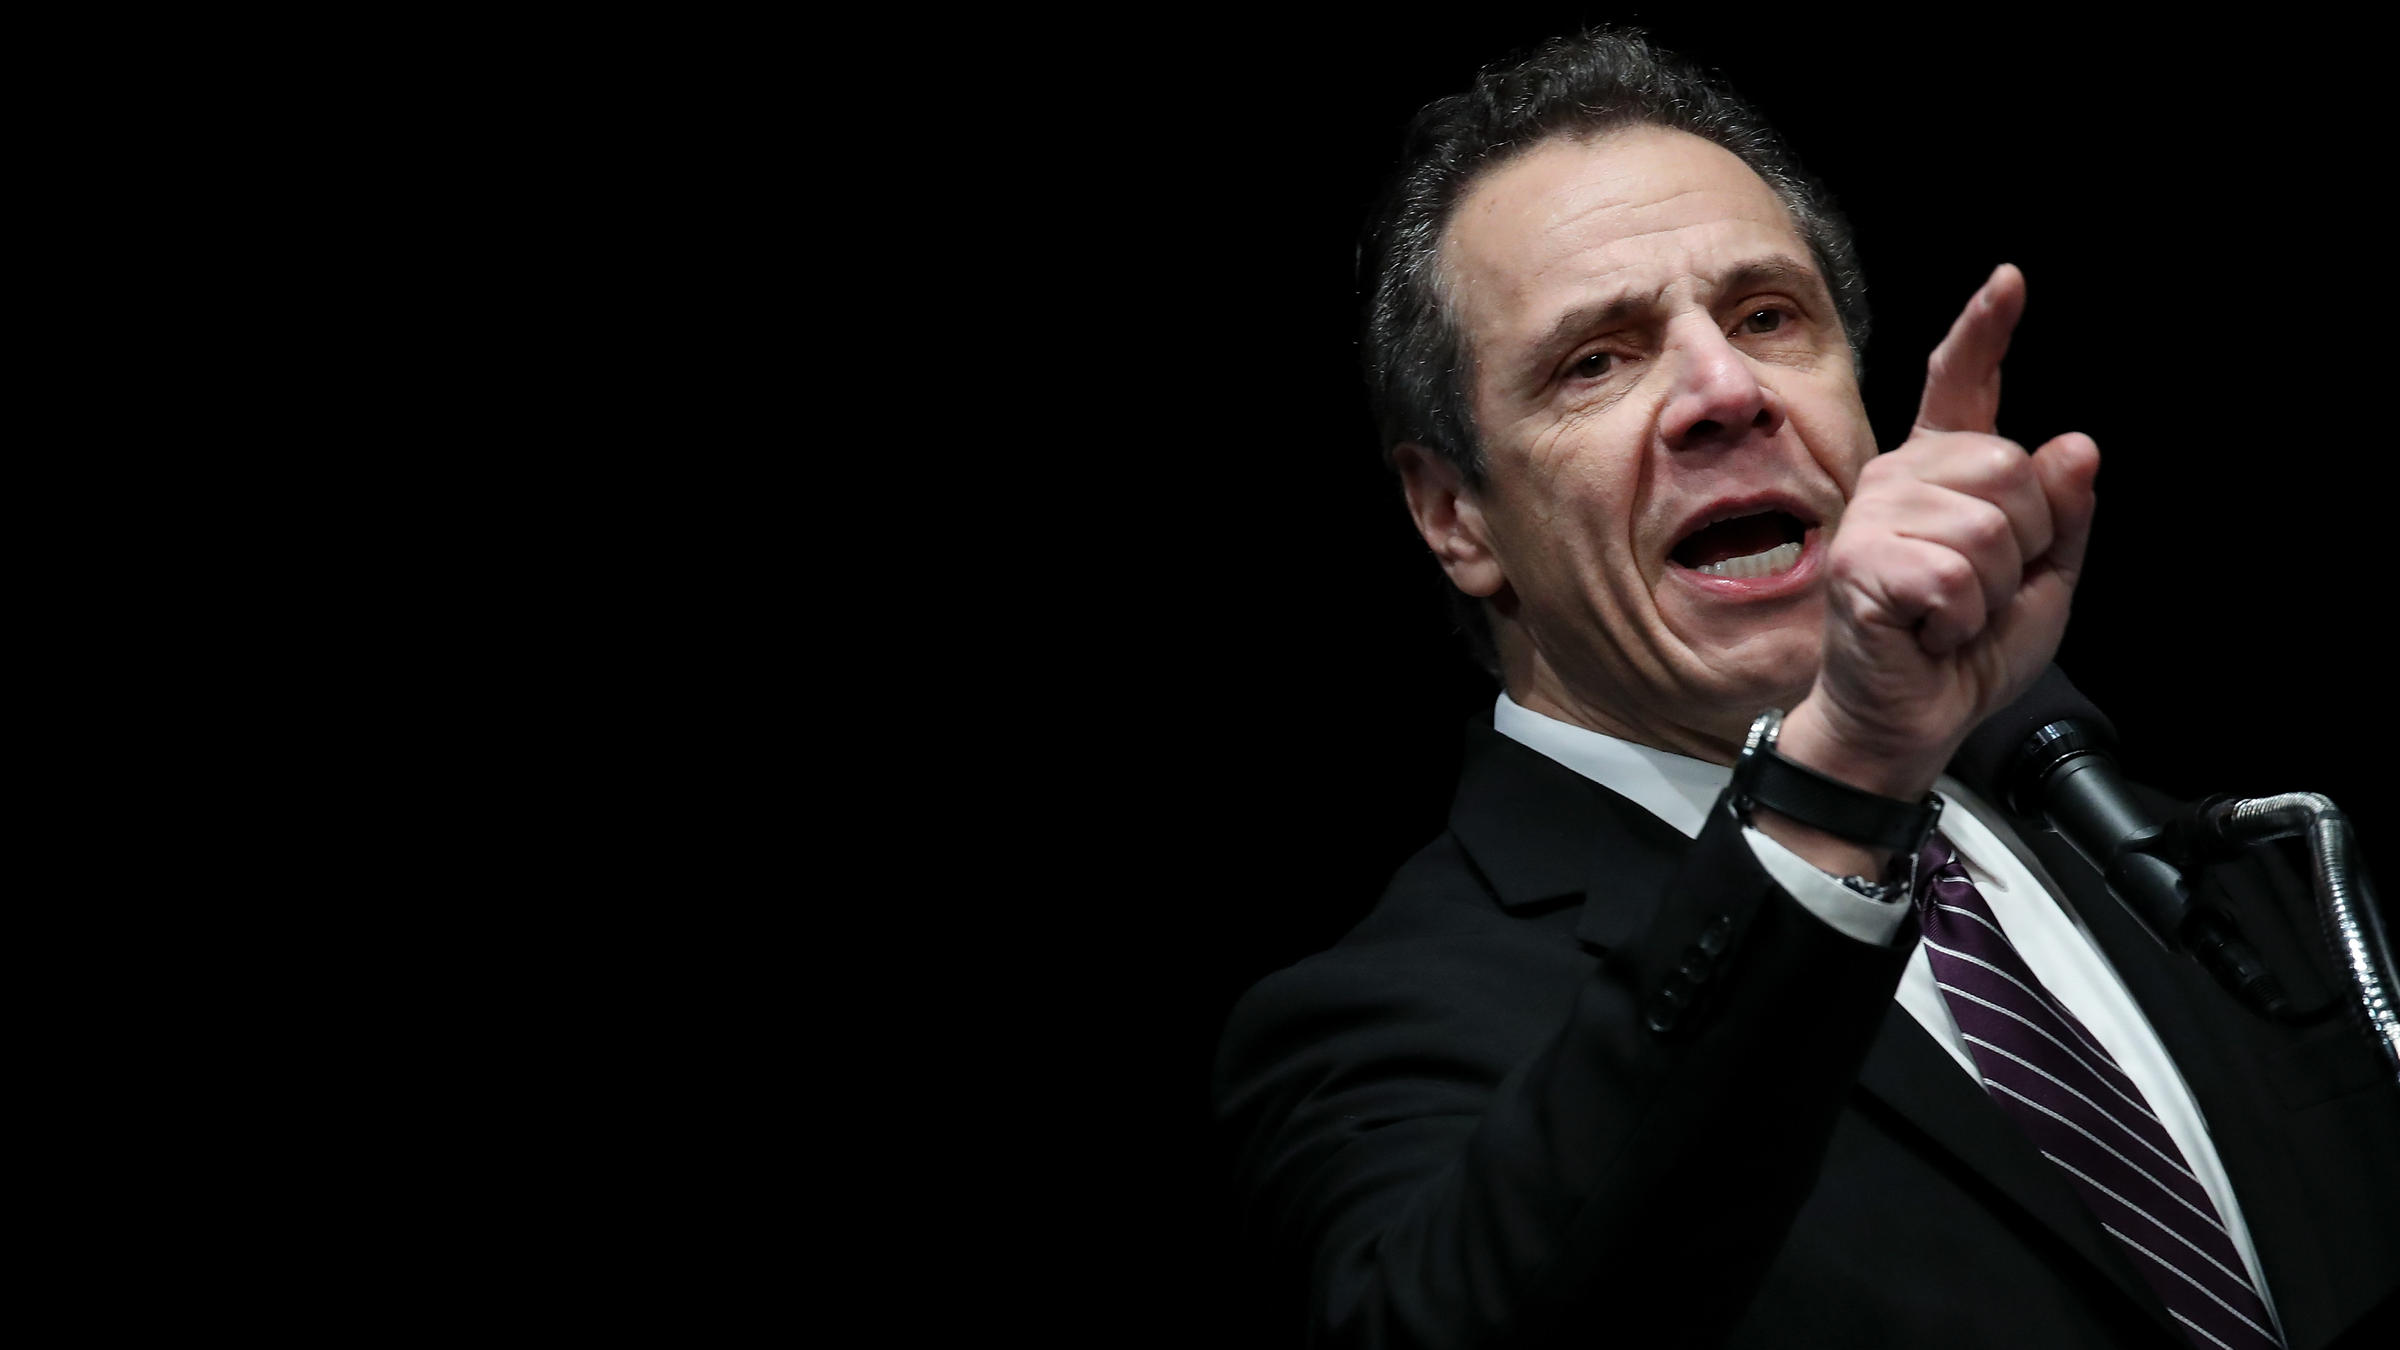 NY governor Cuomo issues cease-and-desist letter to ICE